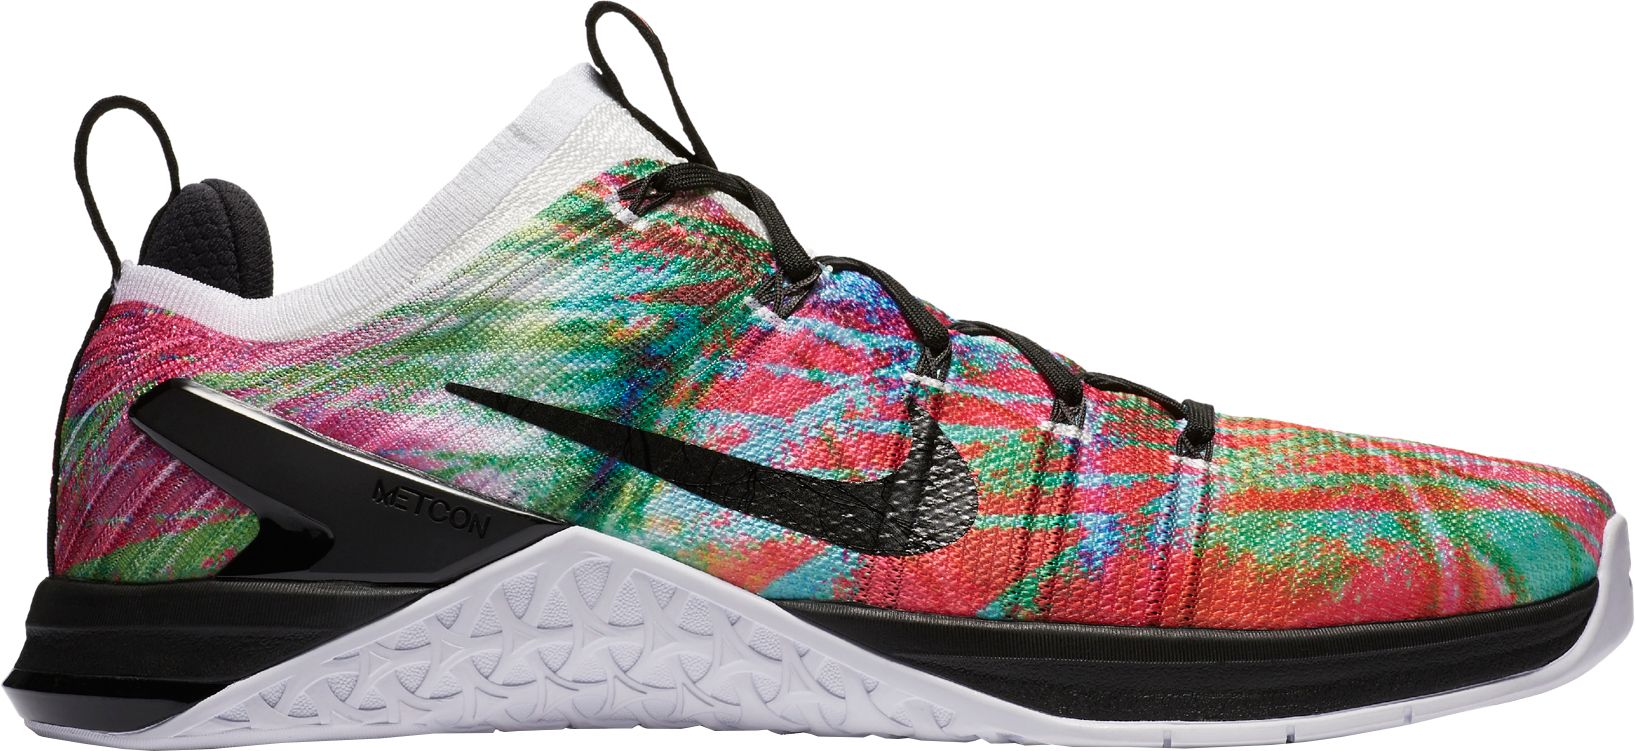 Nike Men's Metcon DSX Flyknit 2 WOD Paradise Training Shoes | DICK'S  Sporting Goods